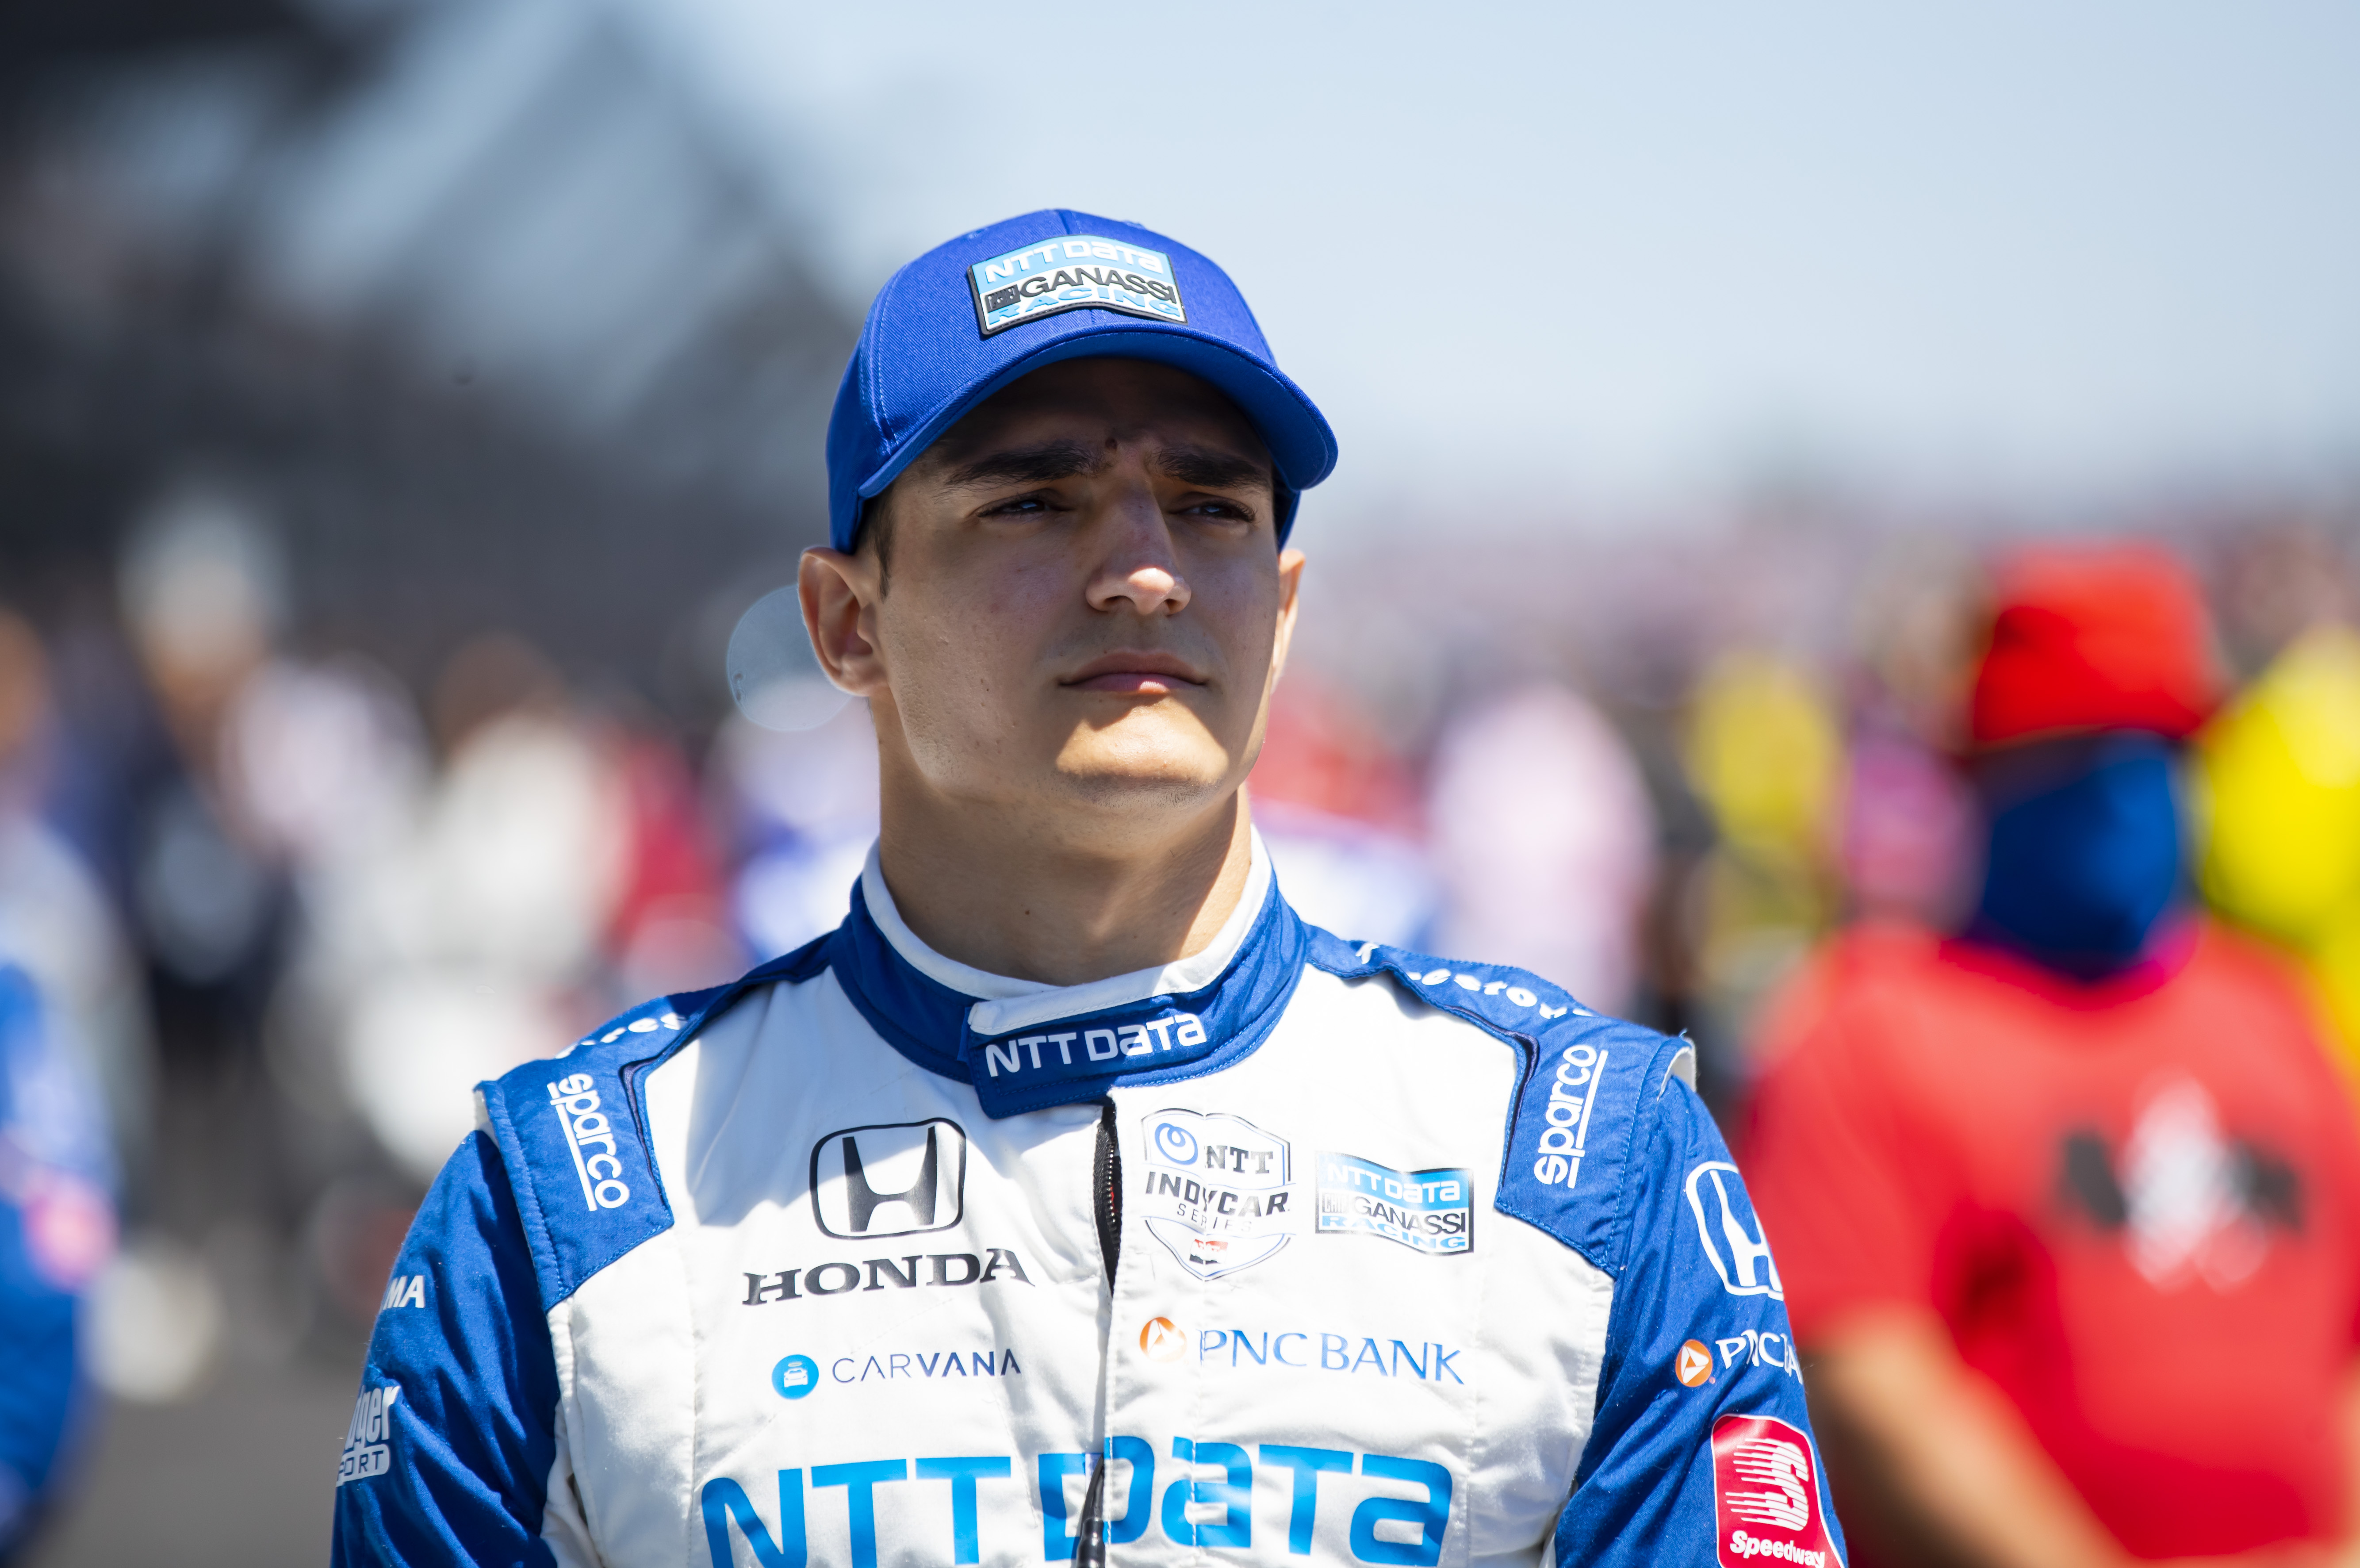 May 30, 2021; Indianapolis, Indiana, USA; IndyCar Series driver Alex Palou prior to the 105th Running of the Indianapolis 500 at Indianapolis Motor Speedway. Mandatory Credit: Mark J. Rebilas-USA TODAY Sports